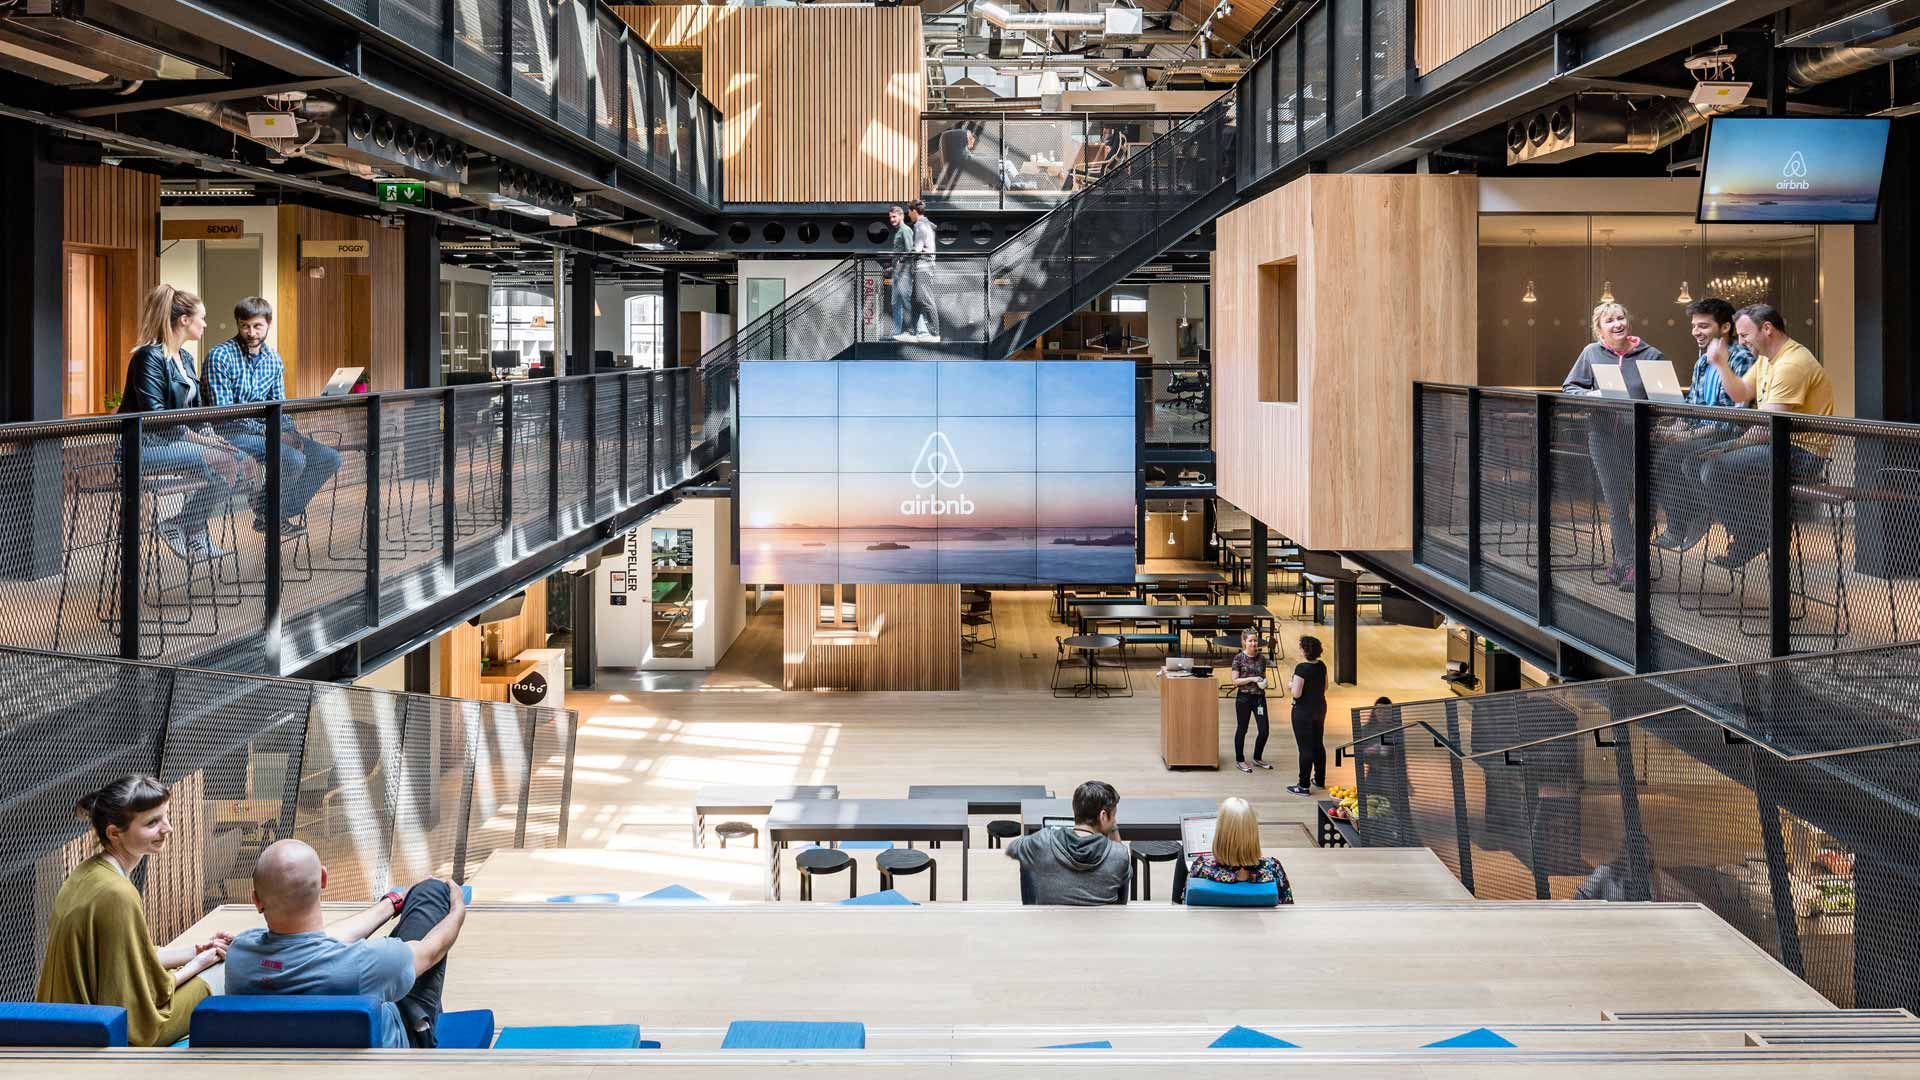 Airbnb head office in San Francisco.